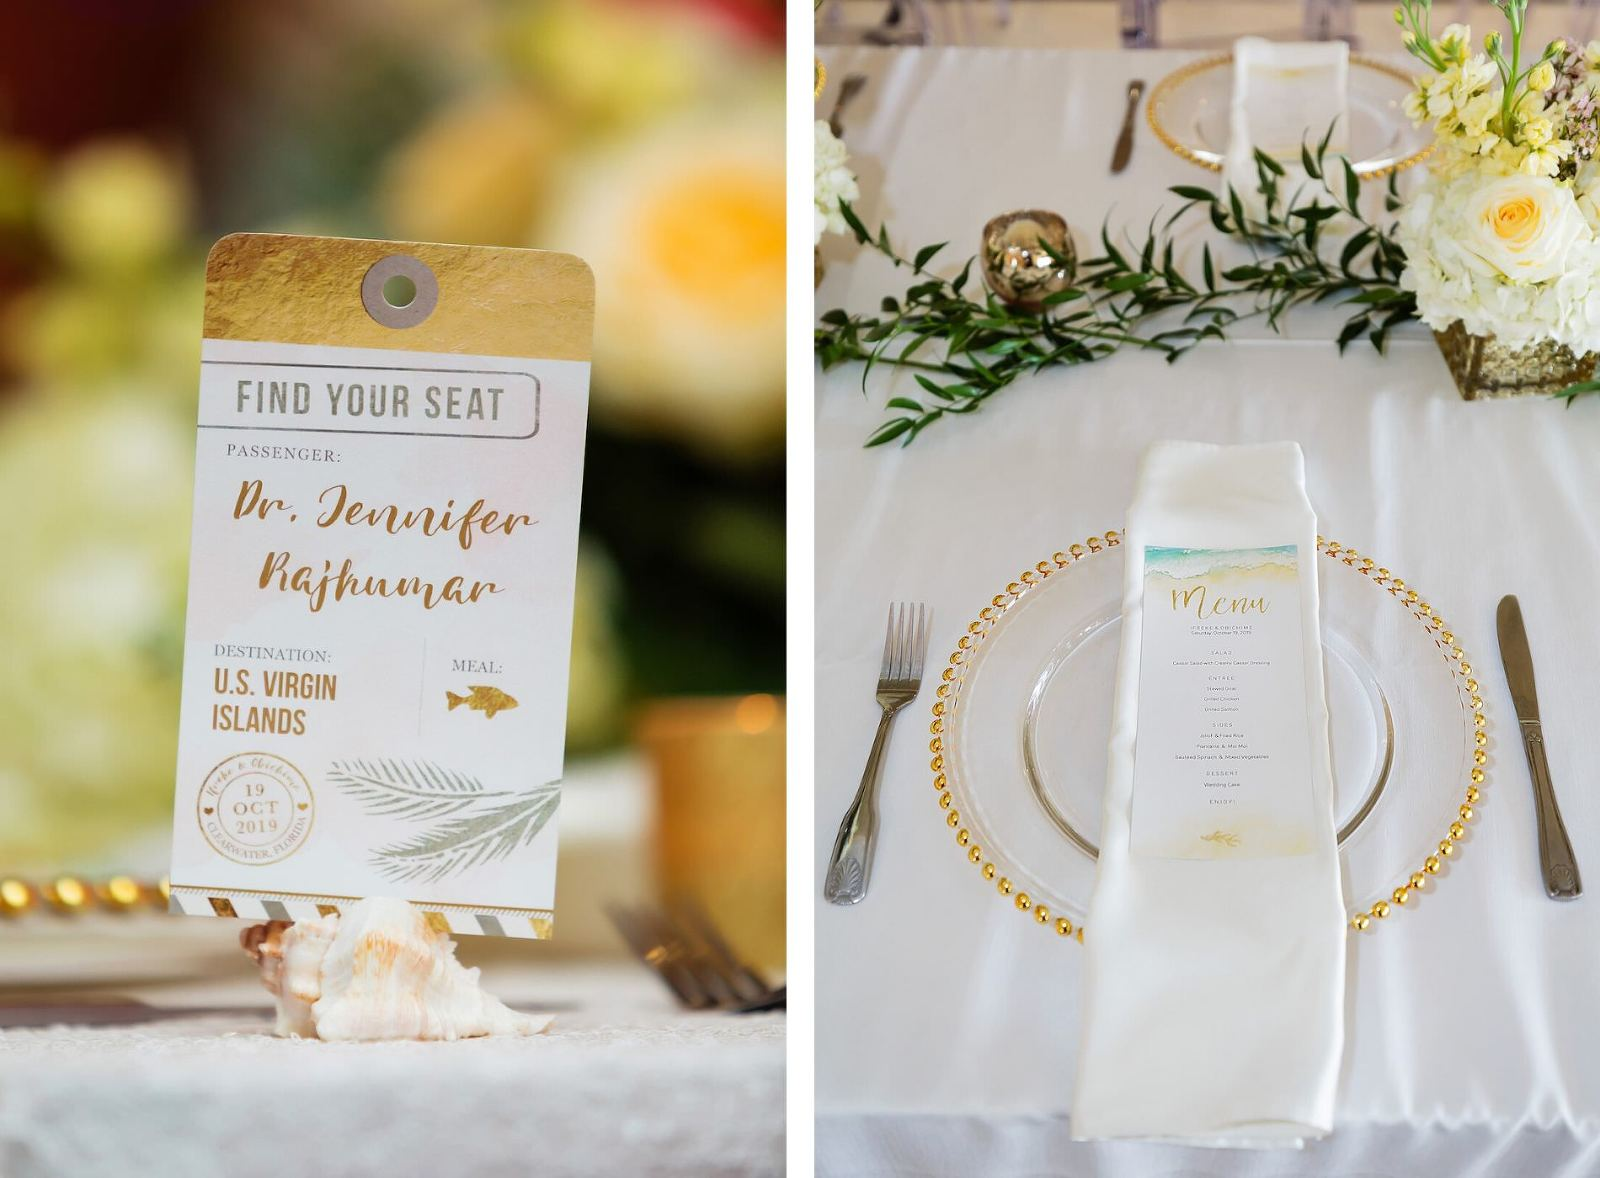 Travel Themed Wedding Reception Decor, Custom Airplane Ticket Seating Cards, Gold Beaded Chargers, White Linens, Custom Dinner Menu | Tampa Bay Wedding Planner Special Moments Event Planning | Wedding Rentals Gabro Event Services